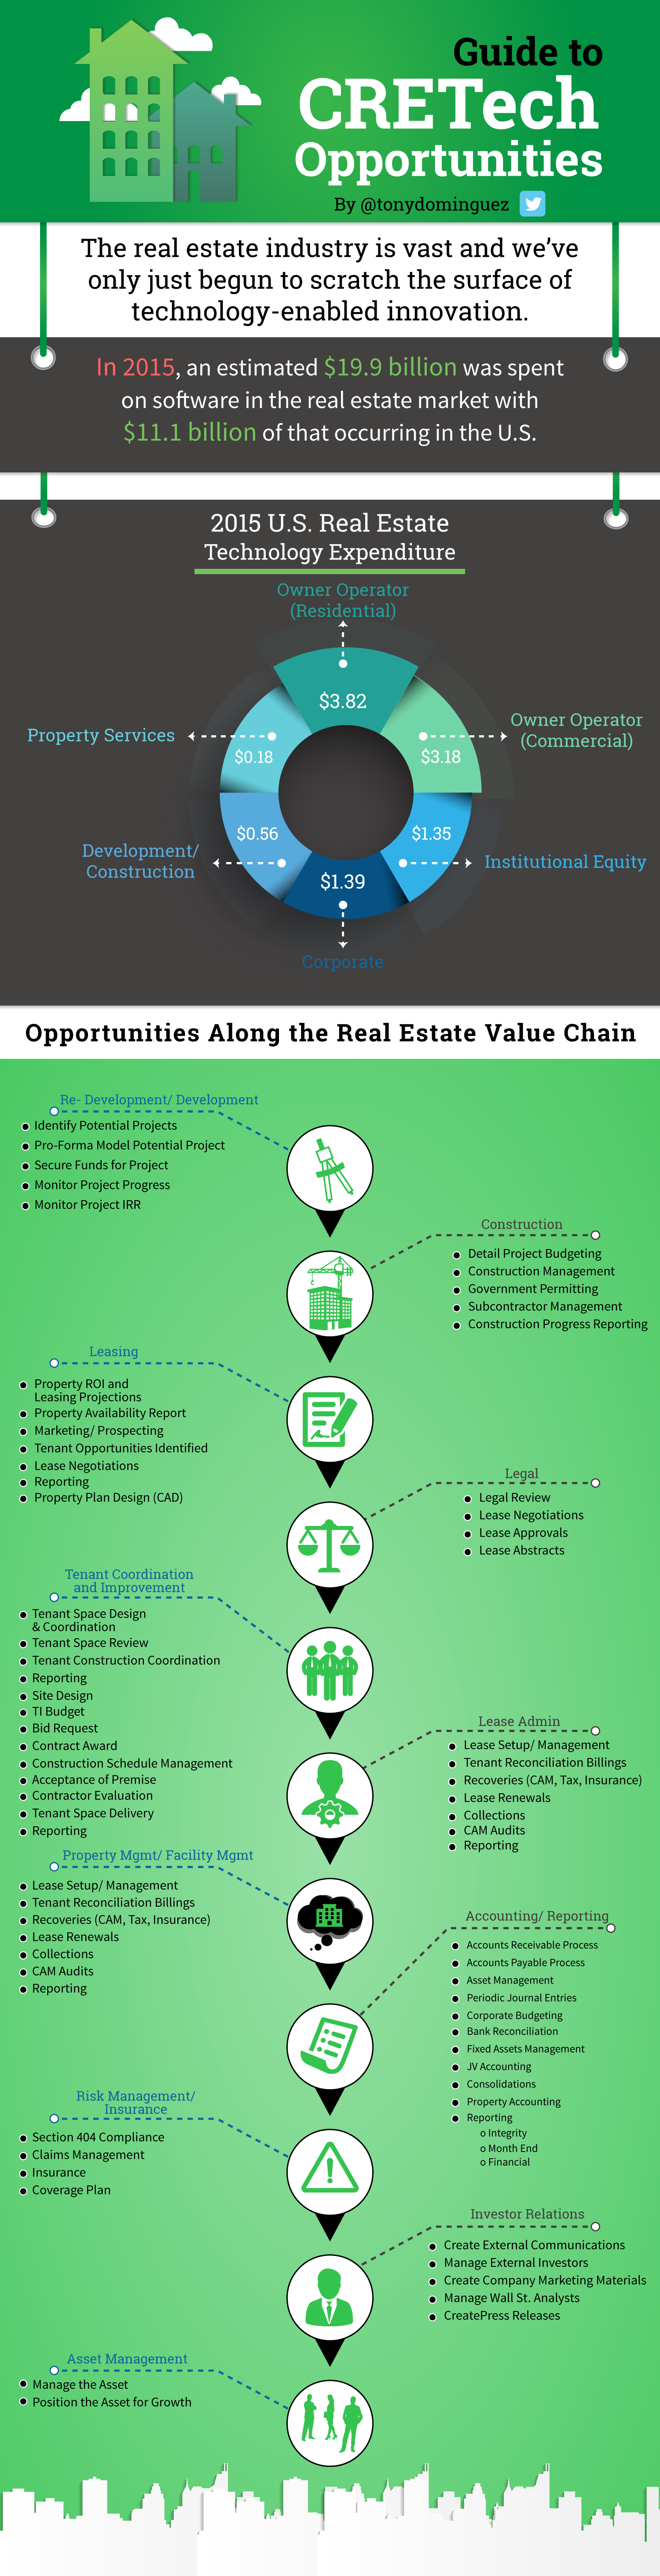 Opportunities along the commercial real estate value chain